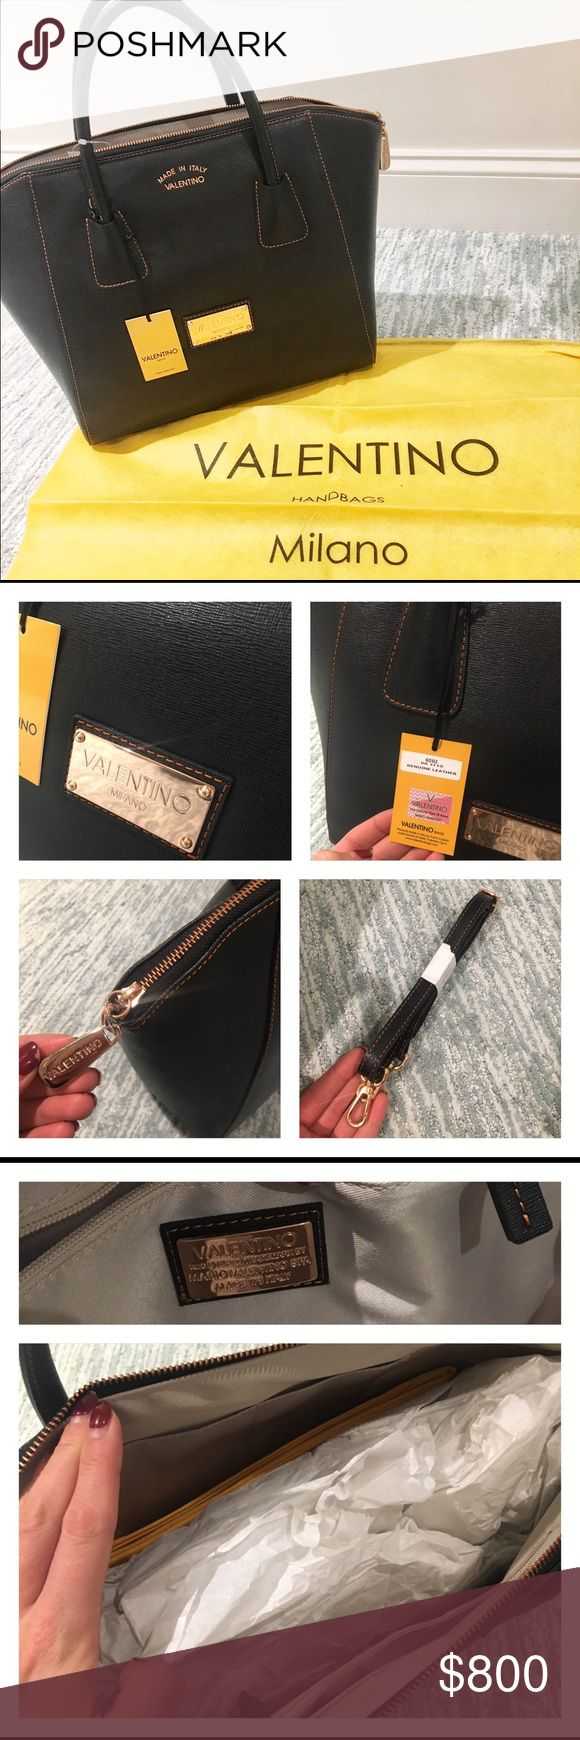 "✨ NWT 100% Authentic Valentino Black GiGi bag ✨ NWT 100% Authentic Valentino Black GiGi bag. Goldstone hardware. Orange/rose gold colored stitching. Gorgeous and spacious! Double top handles 4"" drop. Removable, adjustable cross body strap (25"" drop). One inside zip pocket. 2 non-zip inside pockets.   18"" W x 13"" H x 8"" D. Comes with dustbag. Reasonable offer accepted! Valentino Bags Totes"